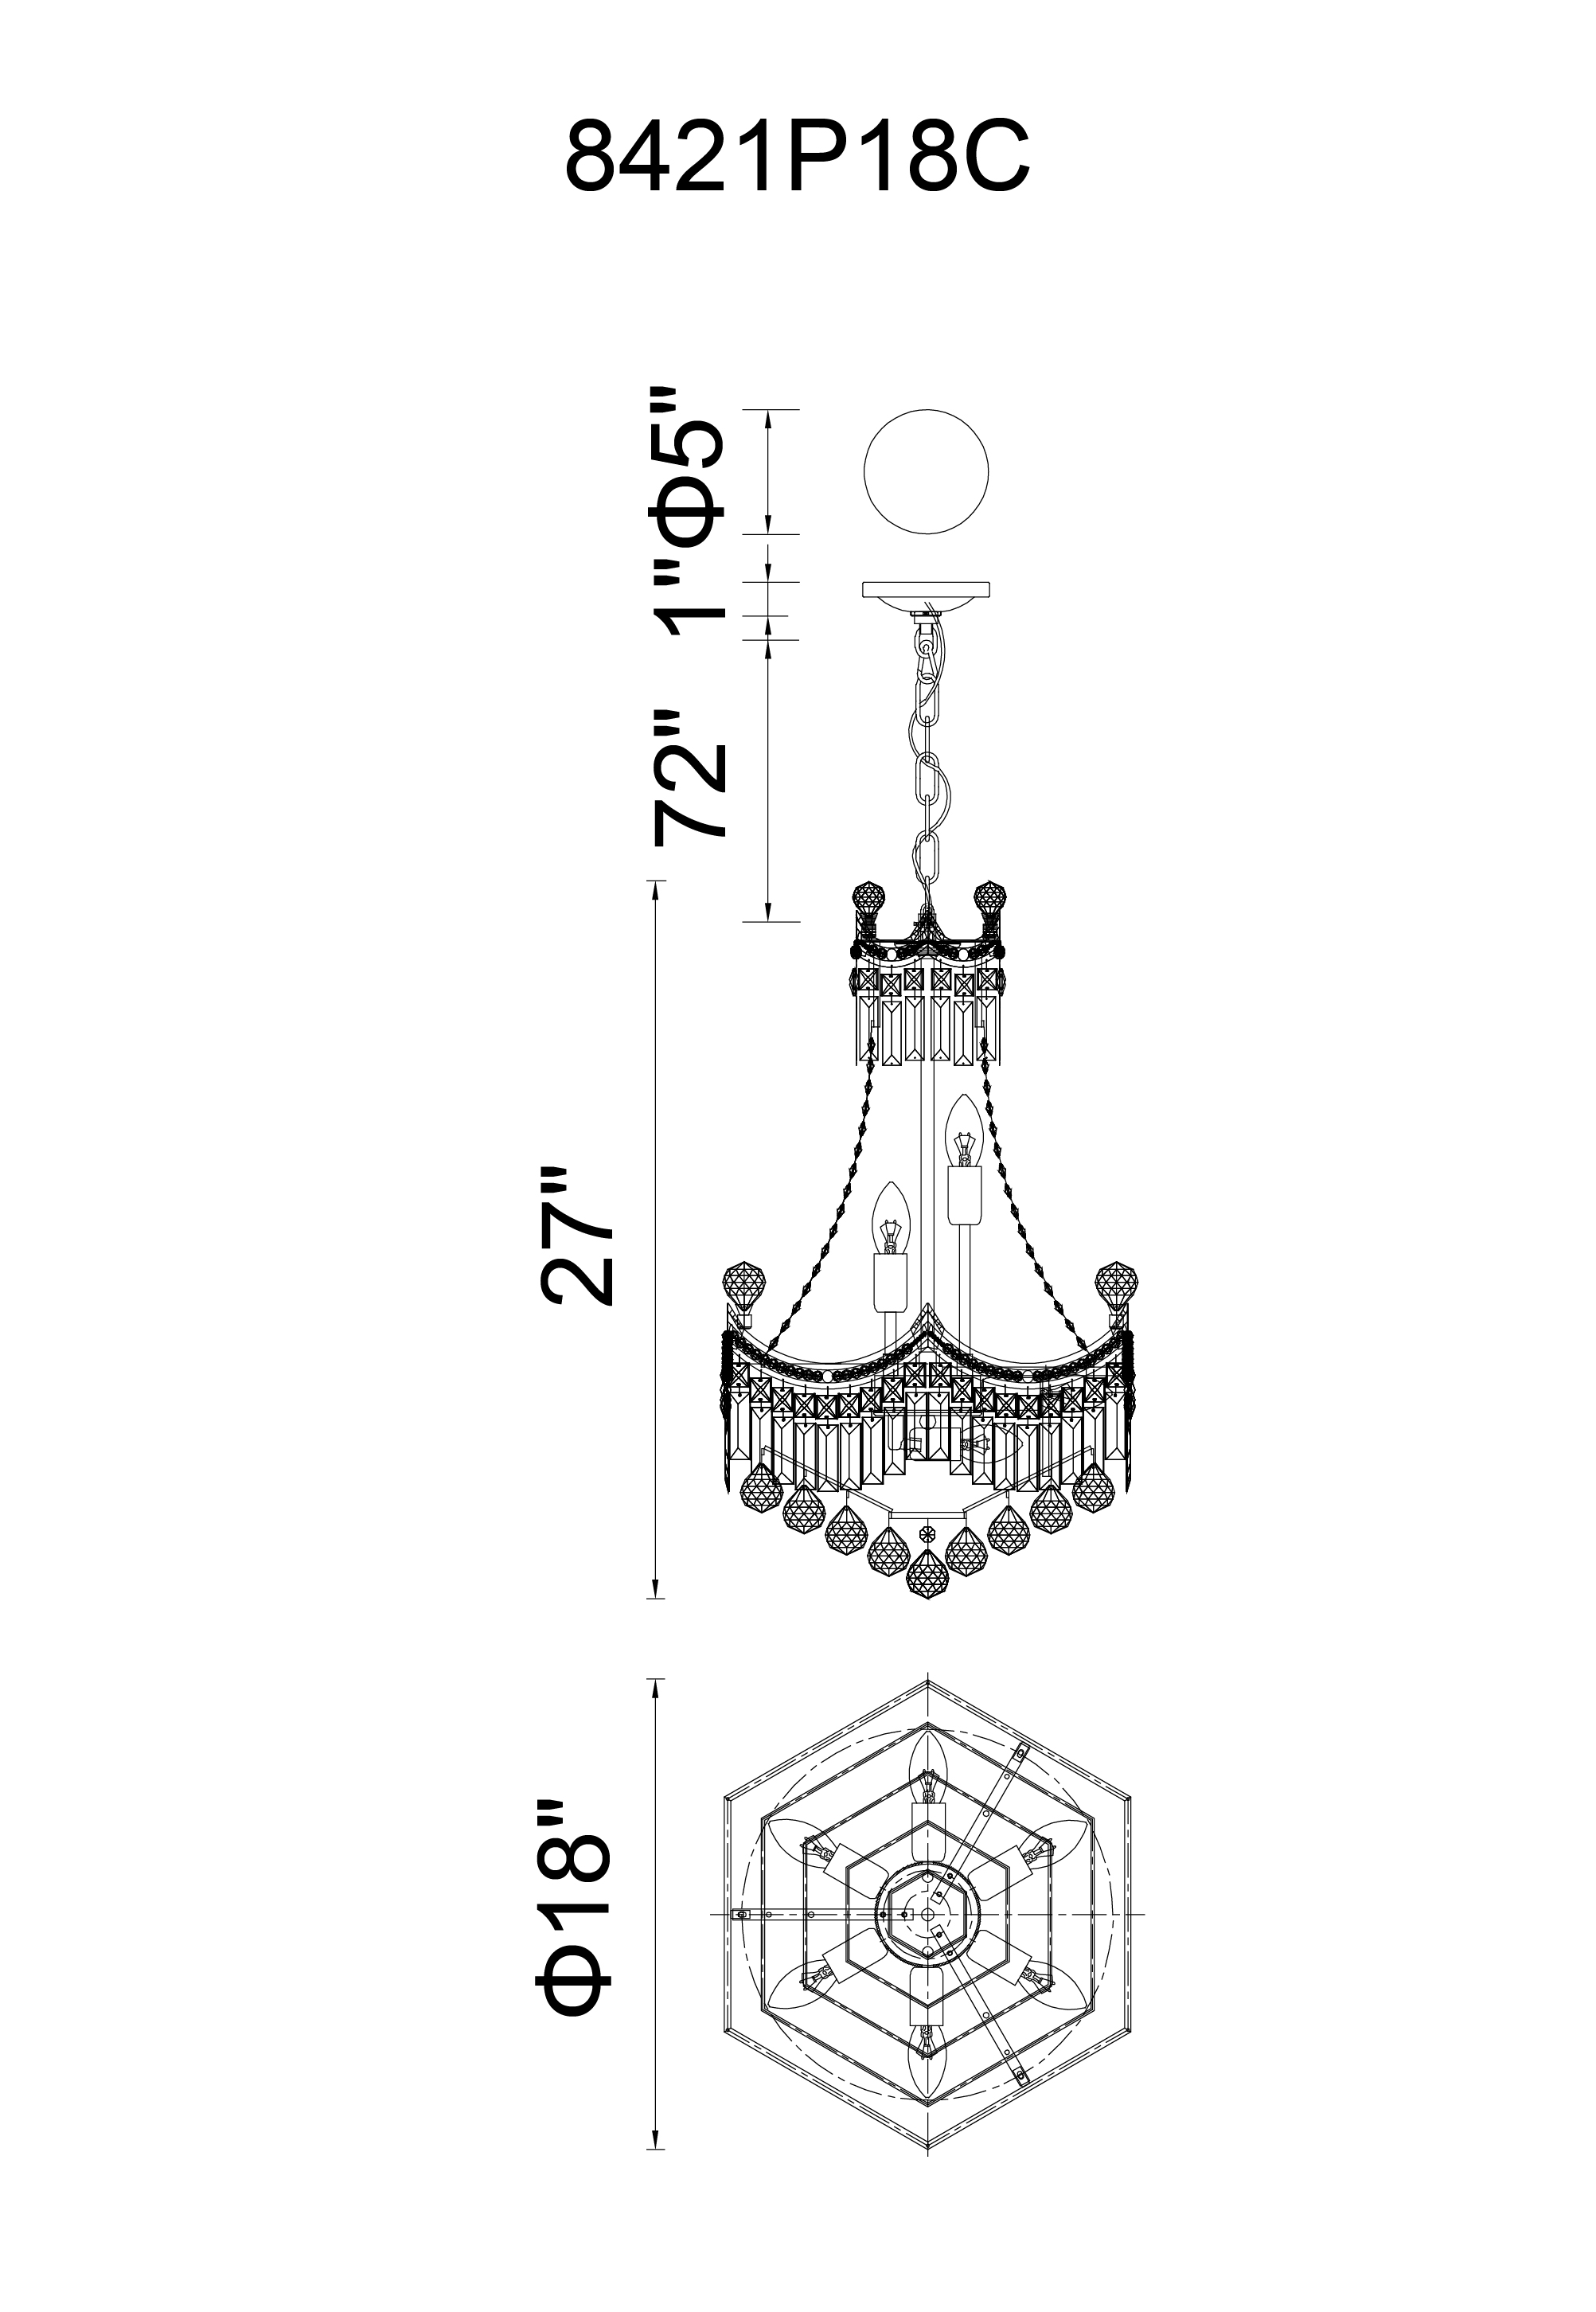 CWI Lighting Amanda 10 Light Down Chandelier With Chrome Finish Model: 8421P18C Line Drawing